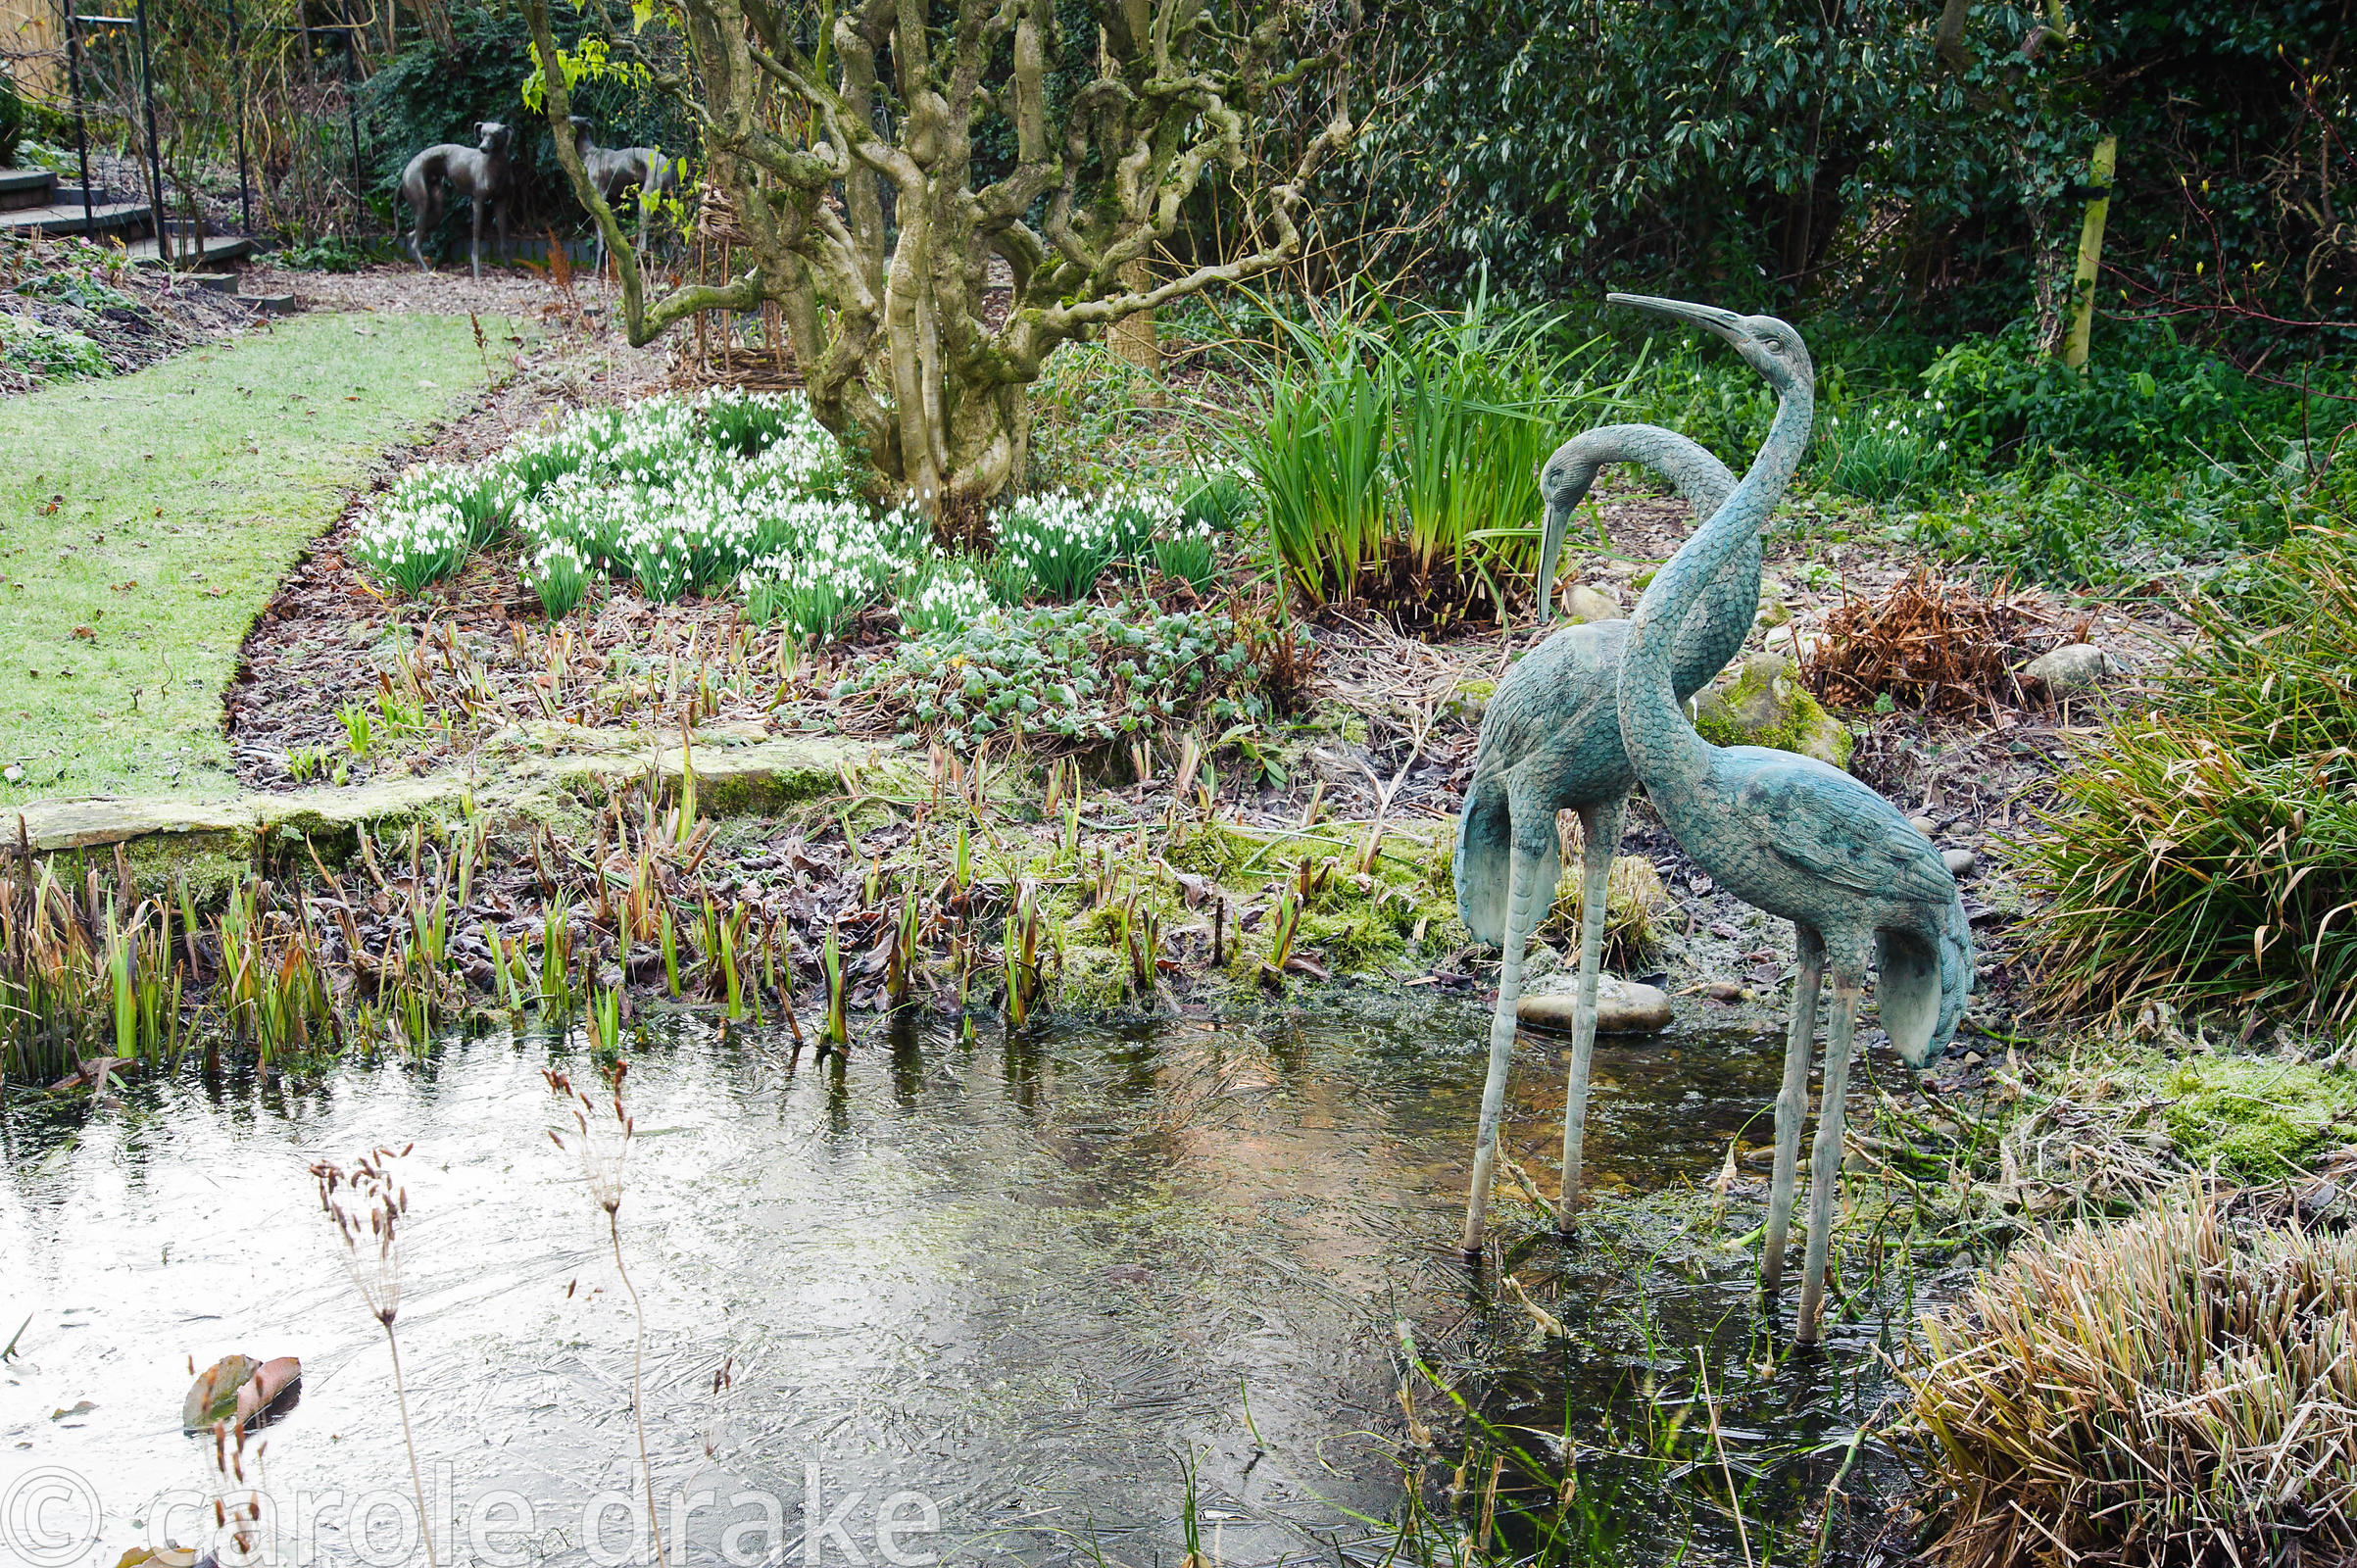 A pair of ornamental cranes in the pond at Windy Ridge, Little Wenlock, Shropshire, UK